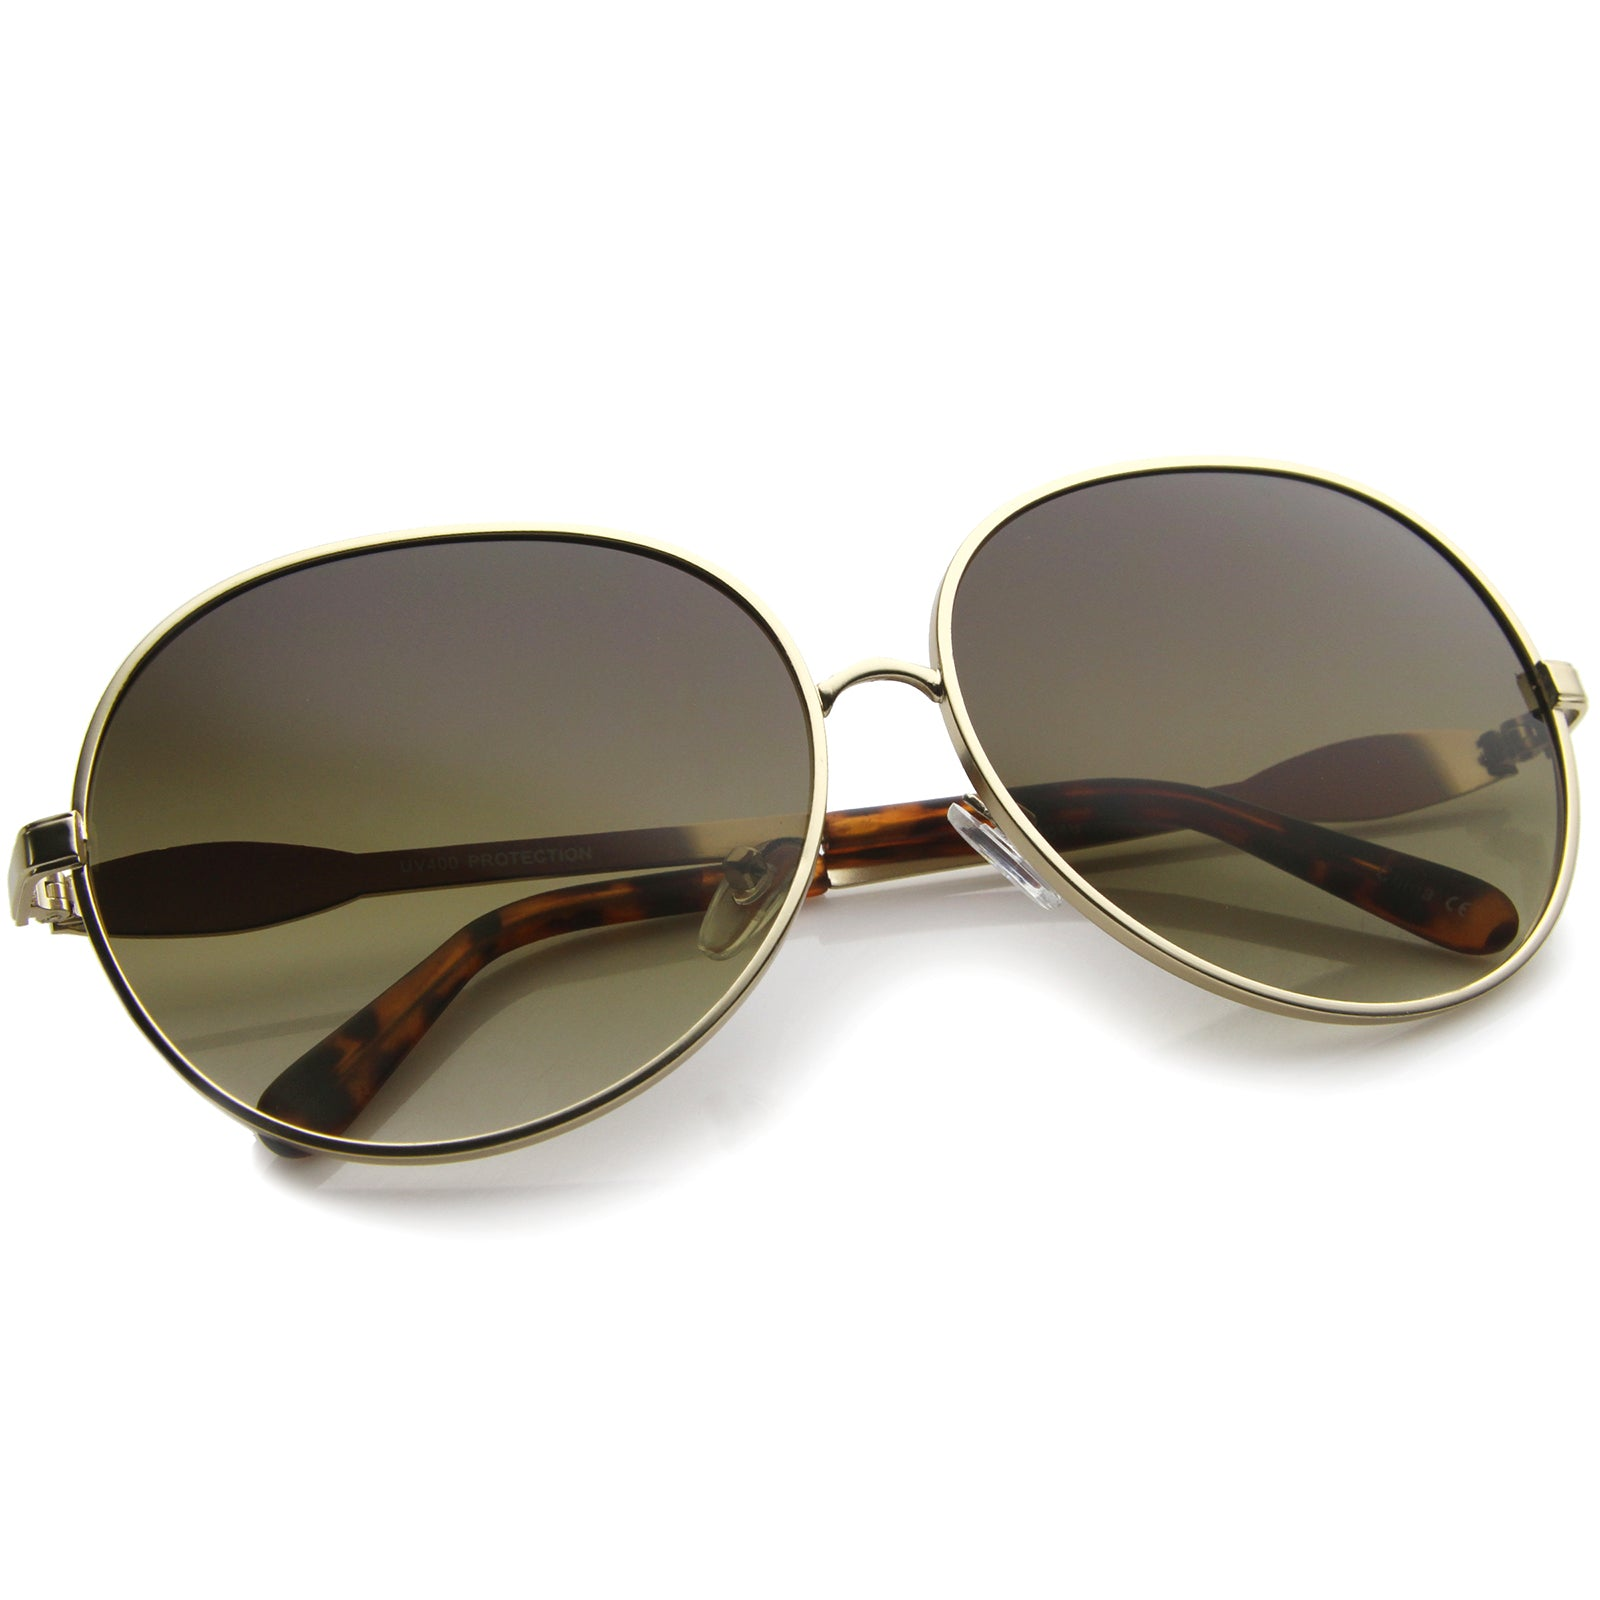 Womens Glam Full Metal Frame Oversized Round Sunglasses 63mm - sunglass.la - 16